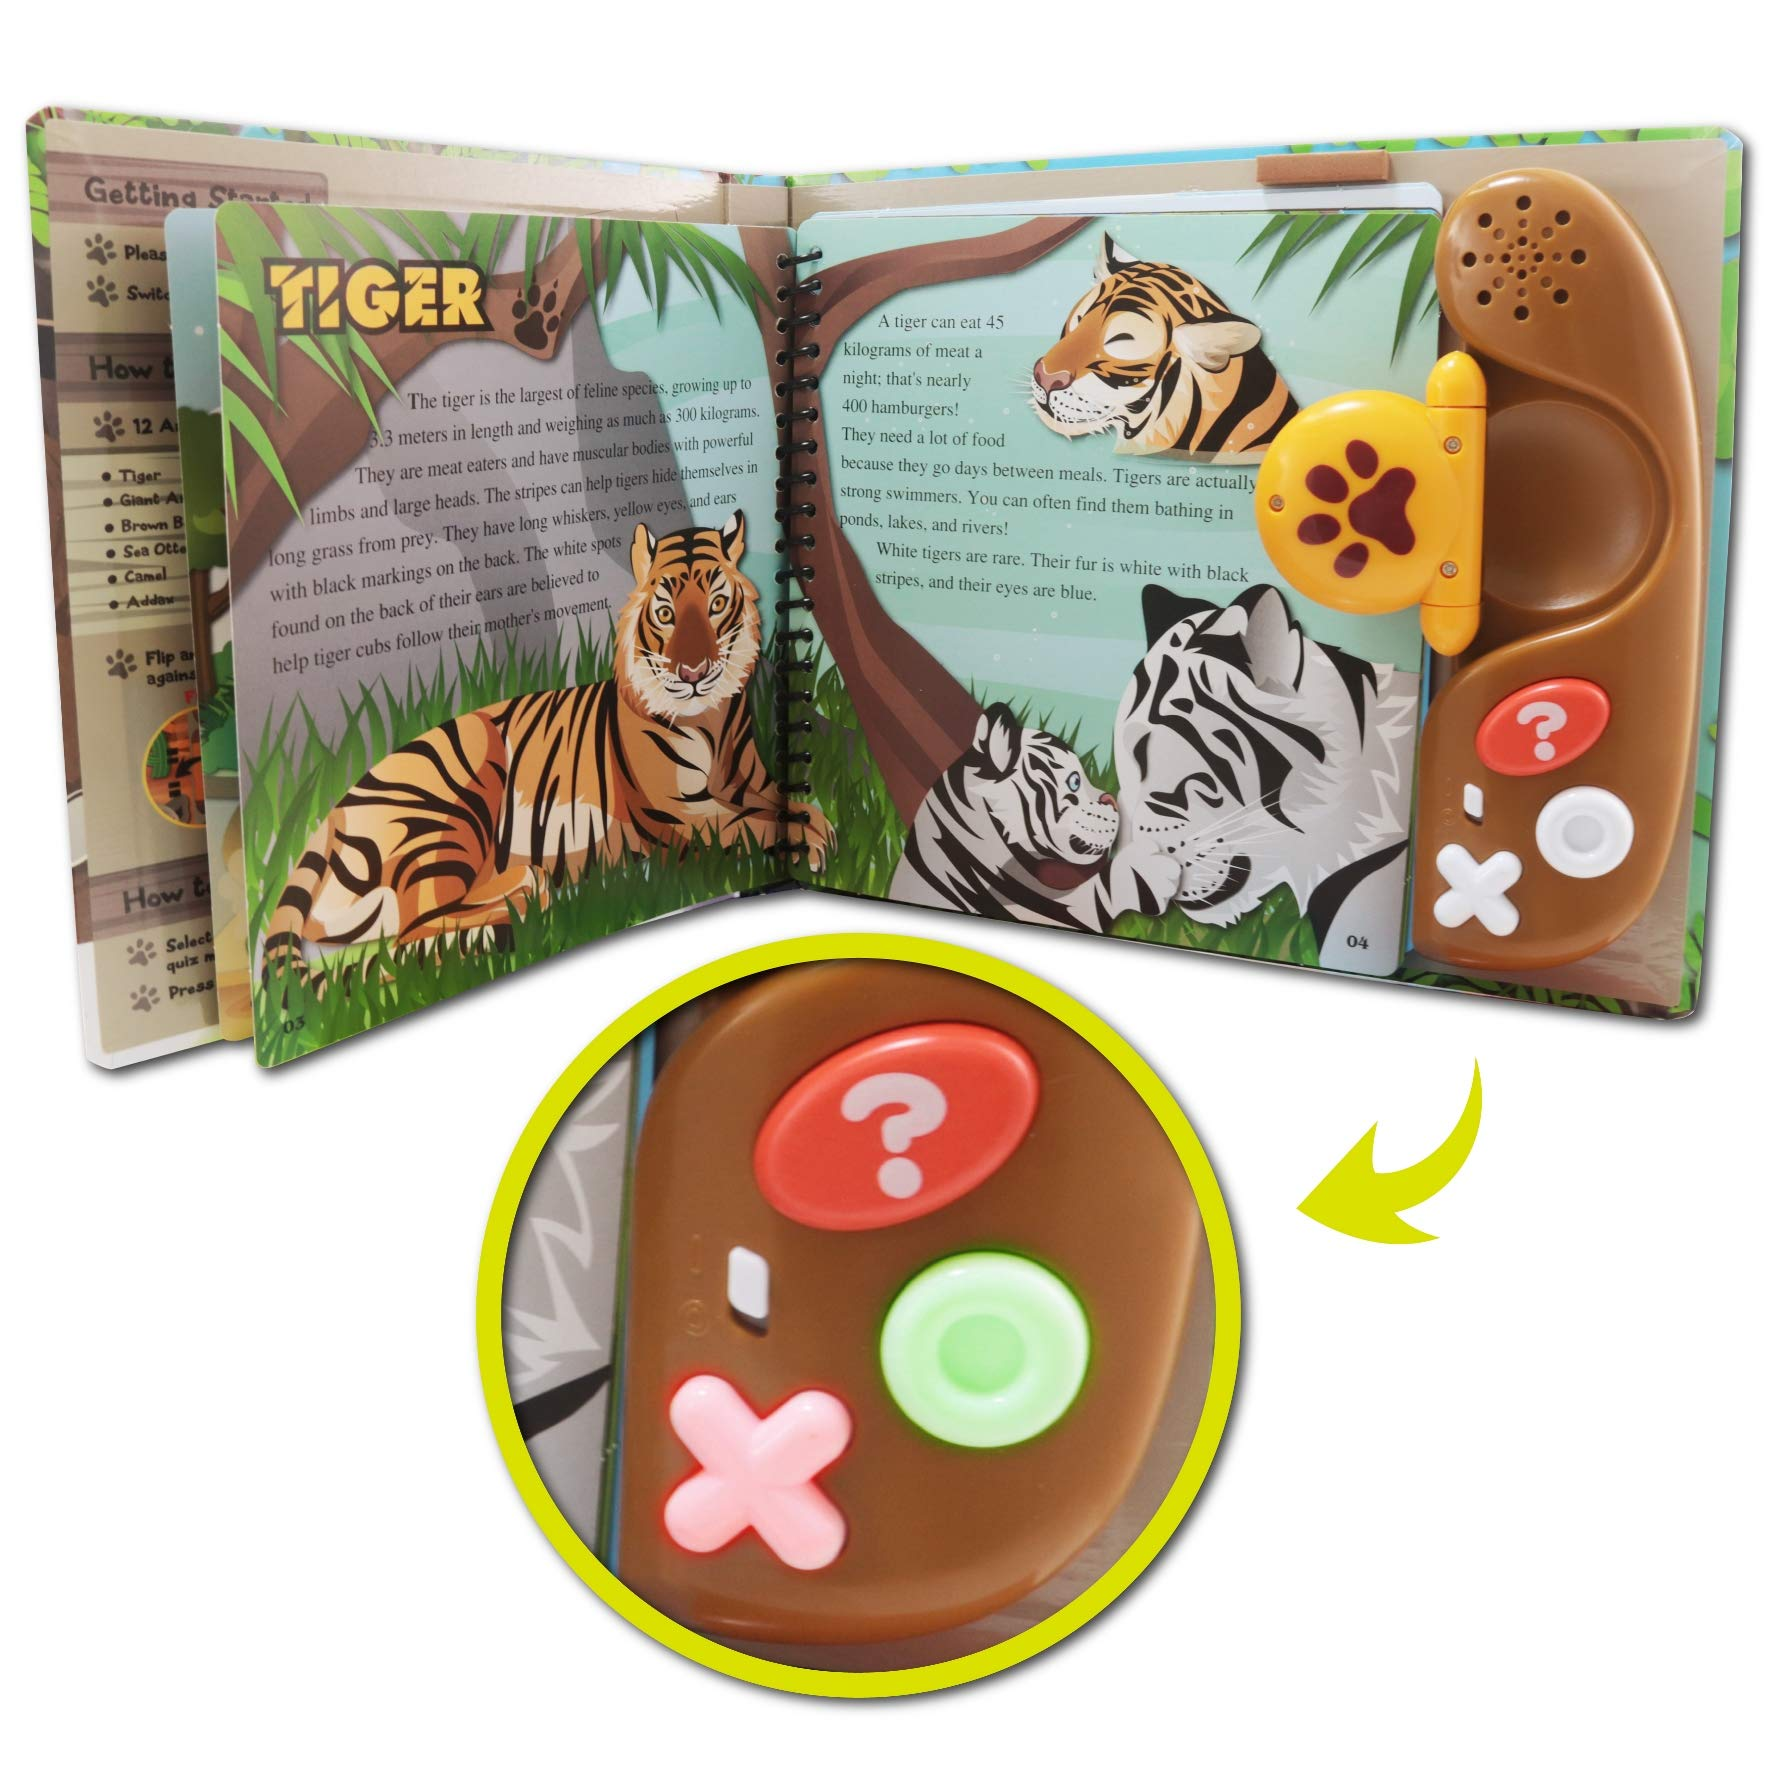 BEST LEARNING Book Reader Animal Kingdom - Educational Talking Sound Toy to Learn About Animals with Quiz Games for Kids Ages 3 to 8 Years Old by BEST LEARNING (Image #9)